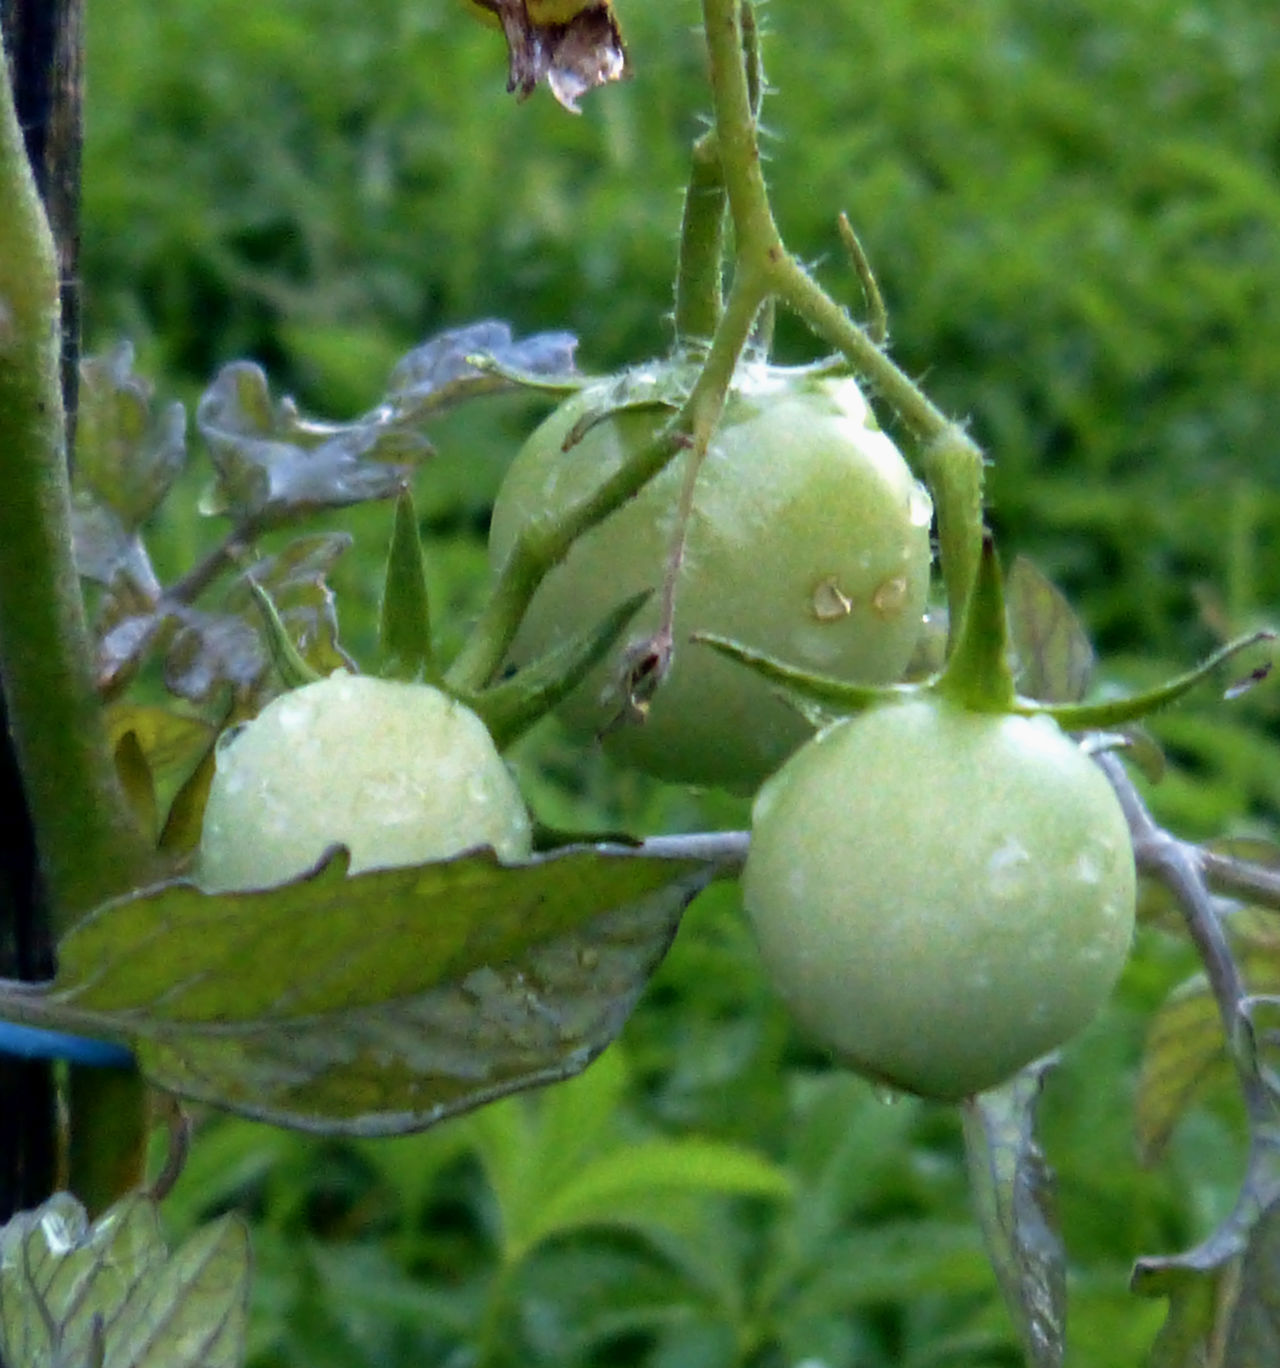 Close-up Day Food Freshness Green Color Green Tomatoes Growth Nature No People Plant